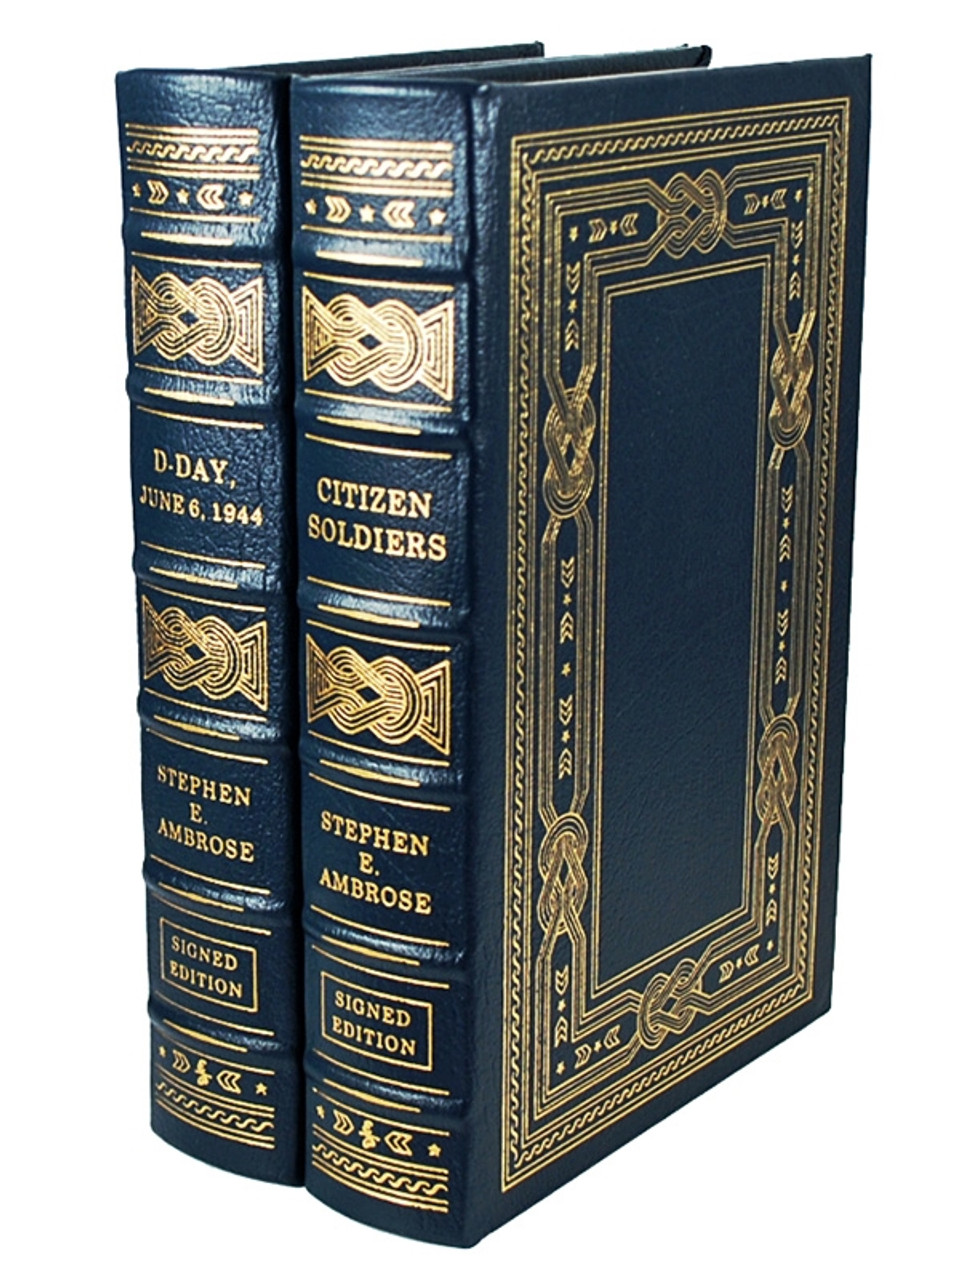 """Easton Press, Stephen E. Ambrose """"D-Day"""", """"Citizen Soldiers"""" Signed Limited Edition, 2-Volume Matching Set [Very Fine]"""